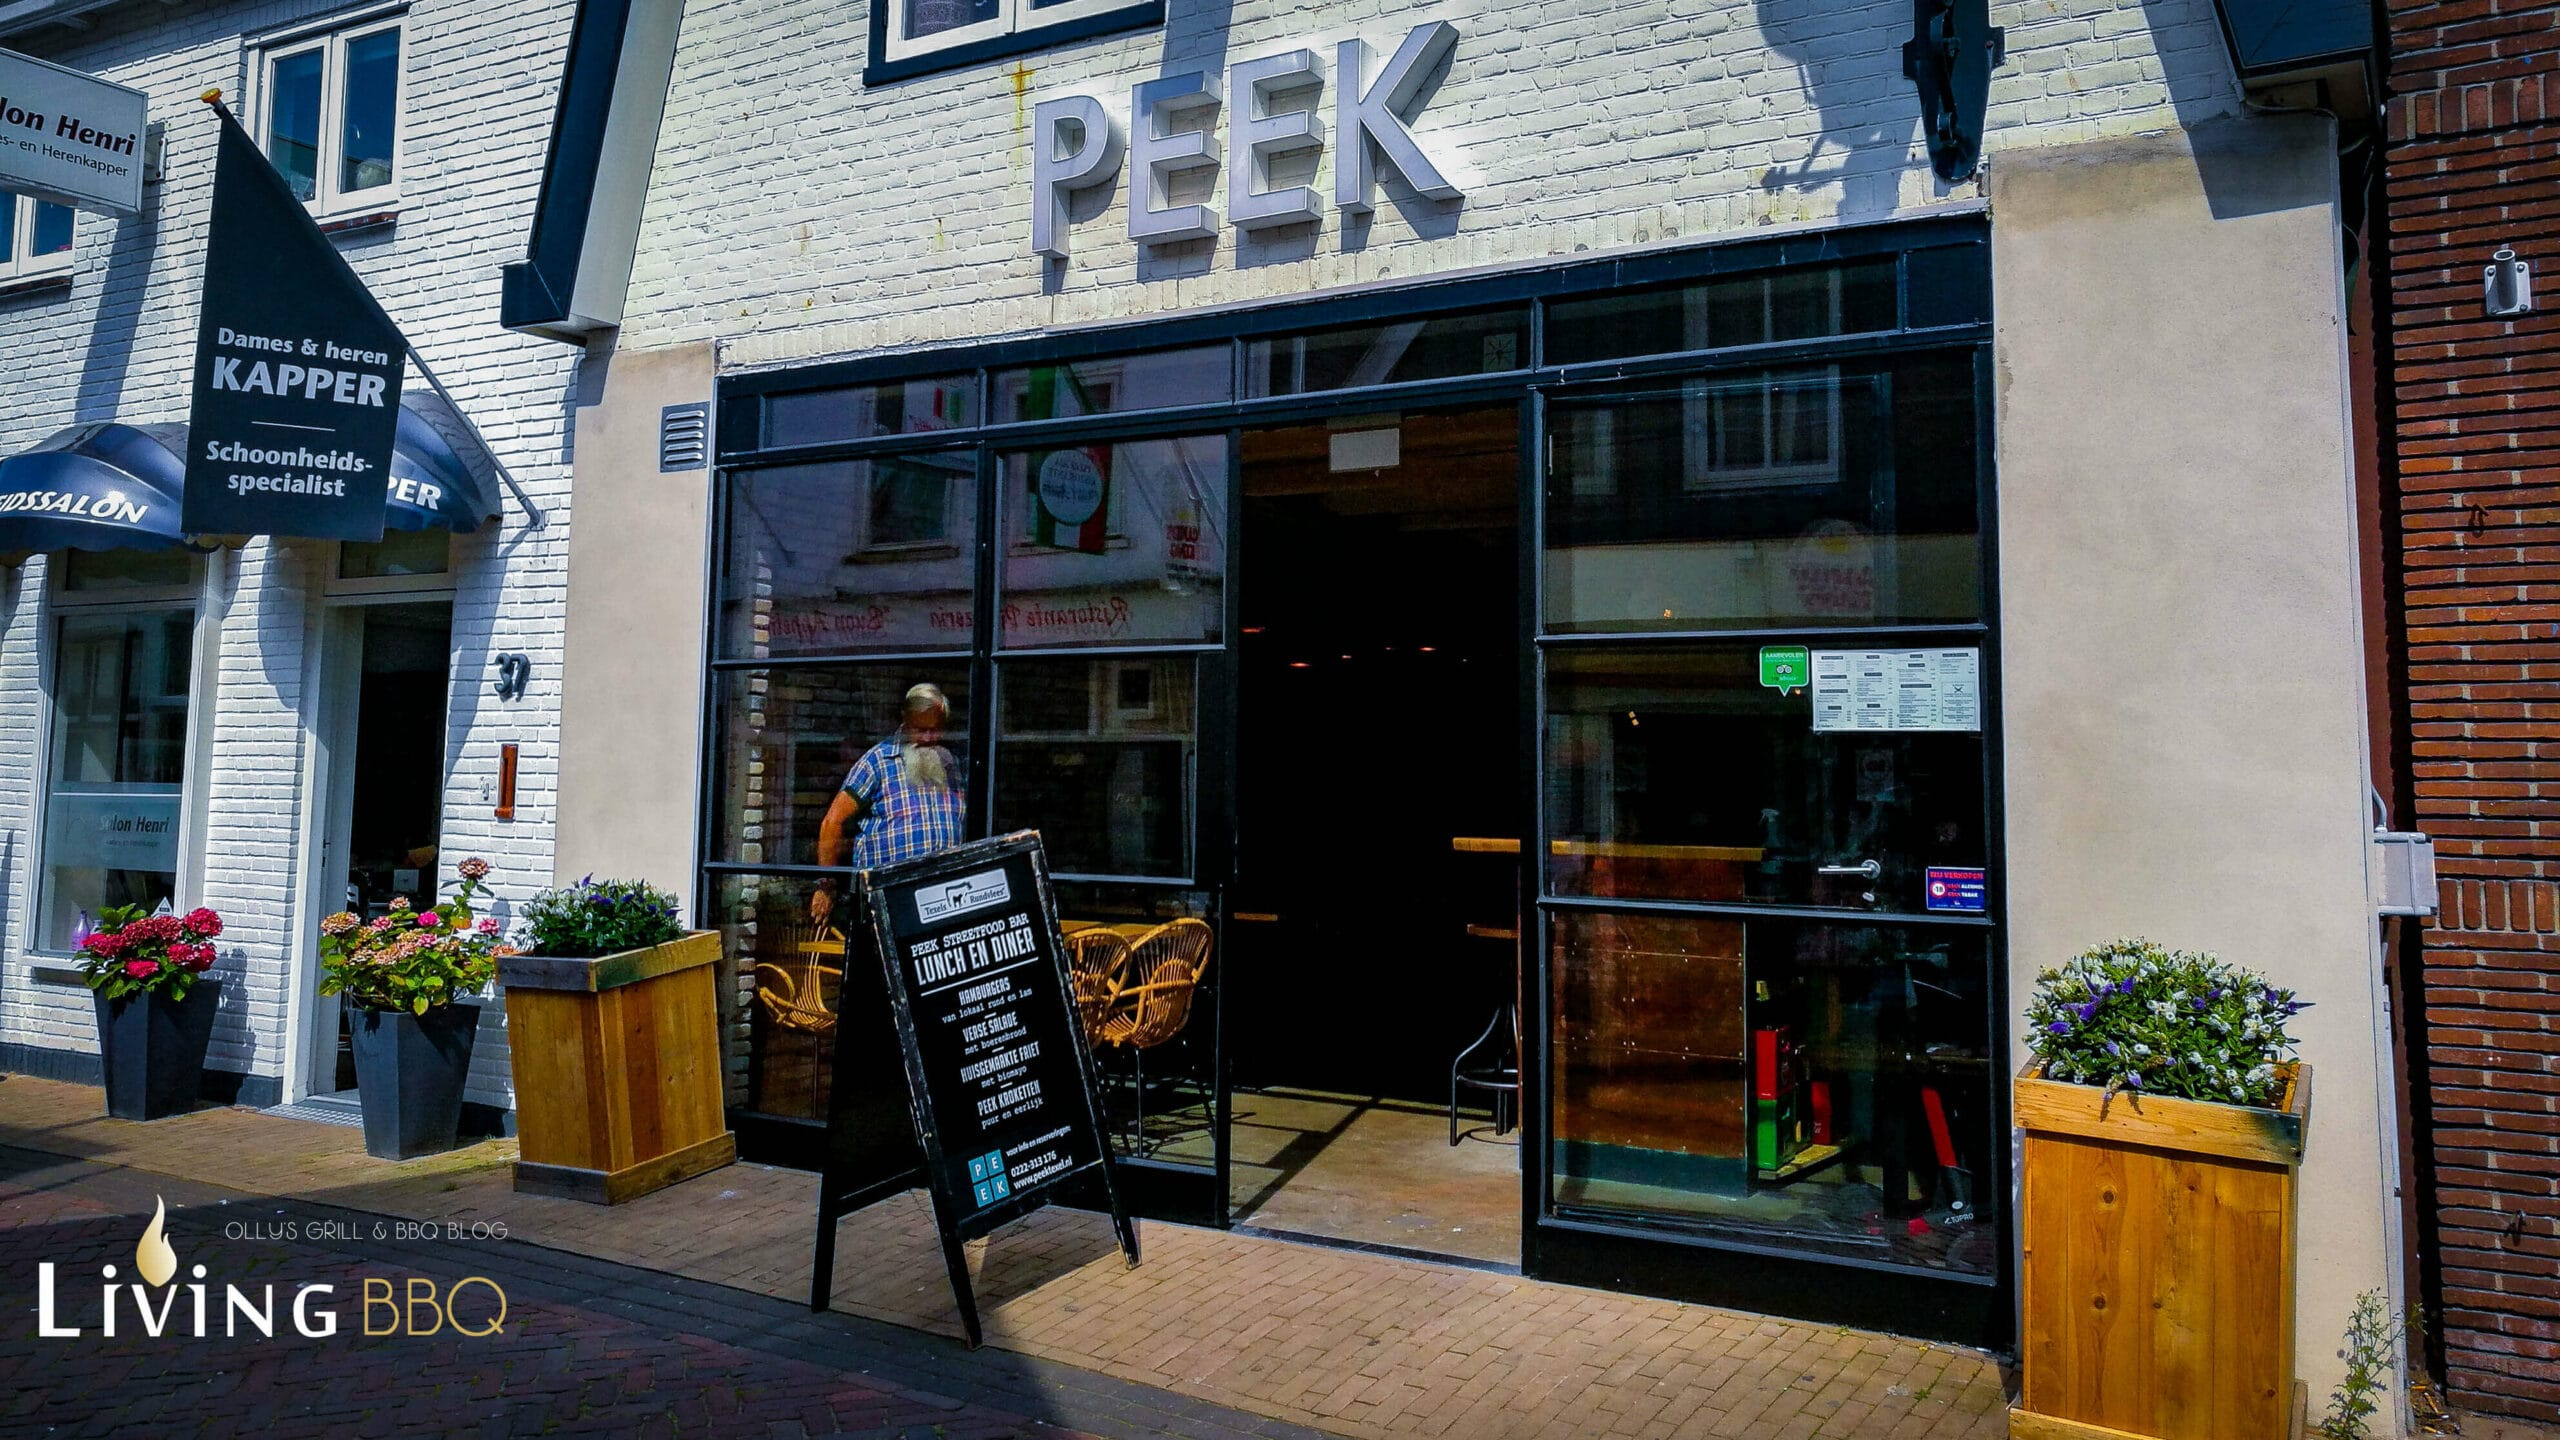 Peek Streetfood Bar Texel peek streetfood bar_Peek Streetfood Bar 20